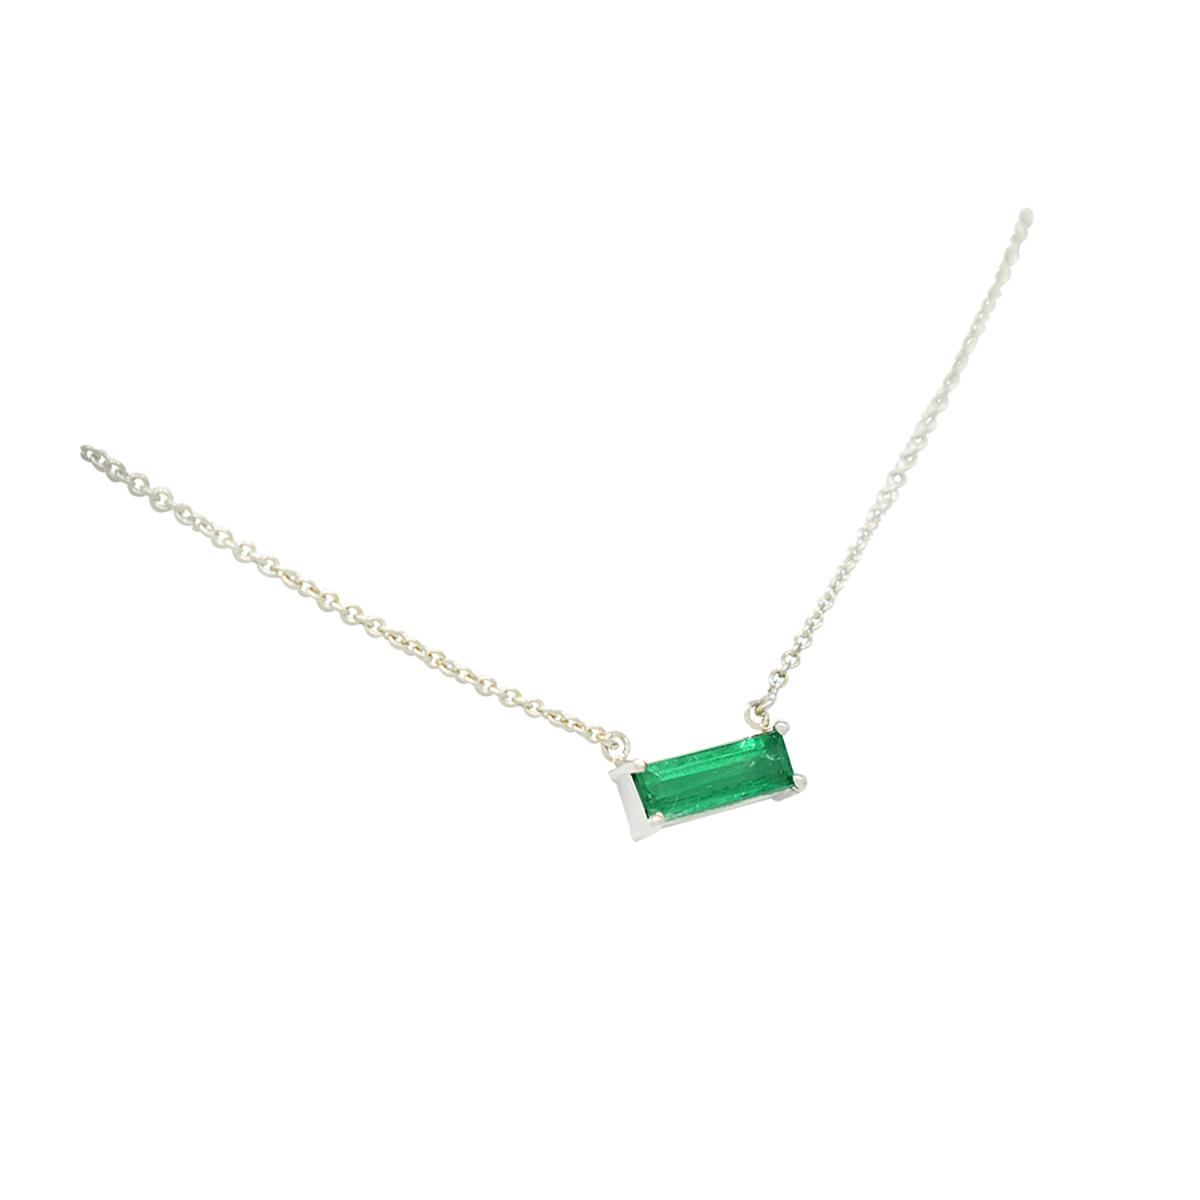 18k-white-gold-solitaire-emerald-necklace-with-baguette-cut-natural-colombian-emerald